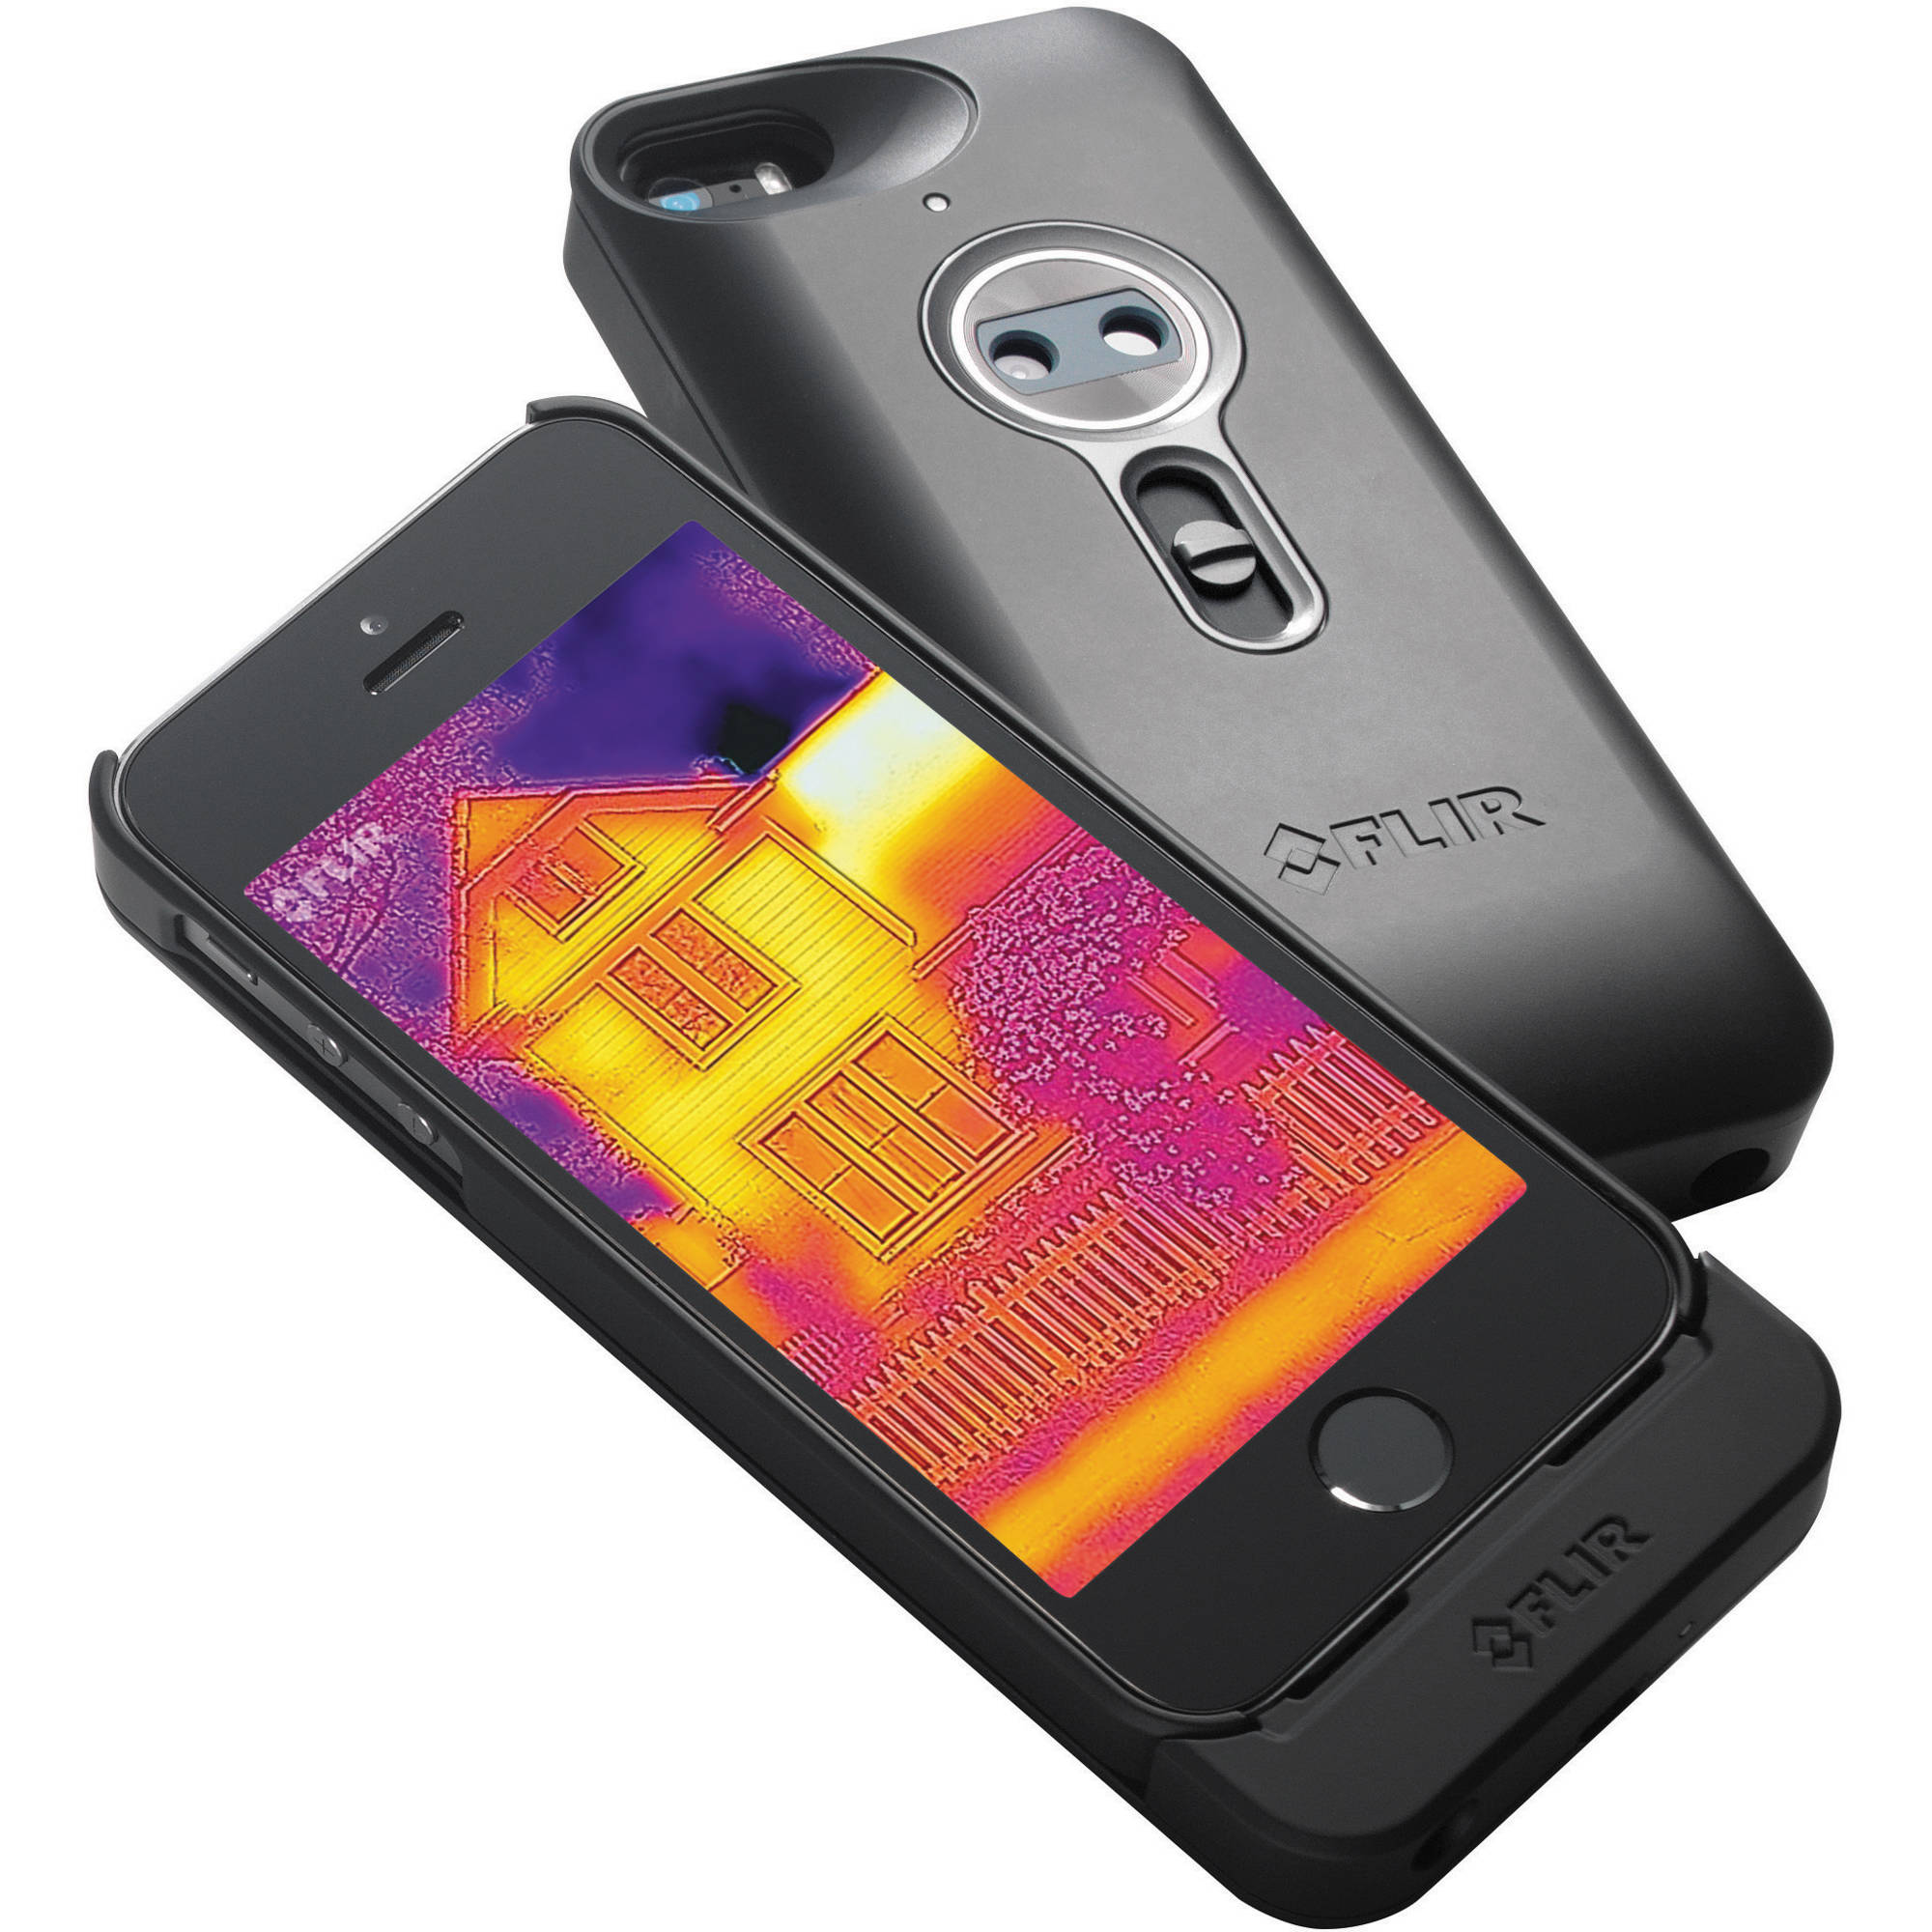 Image Result For Flir Cell Phone